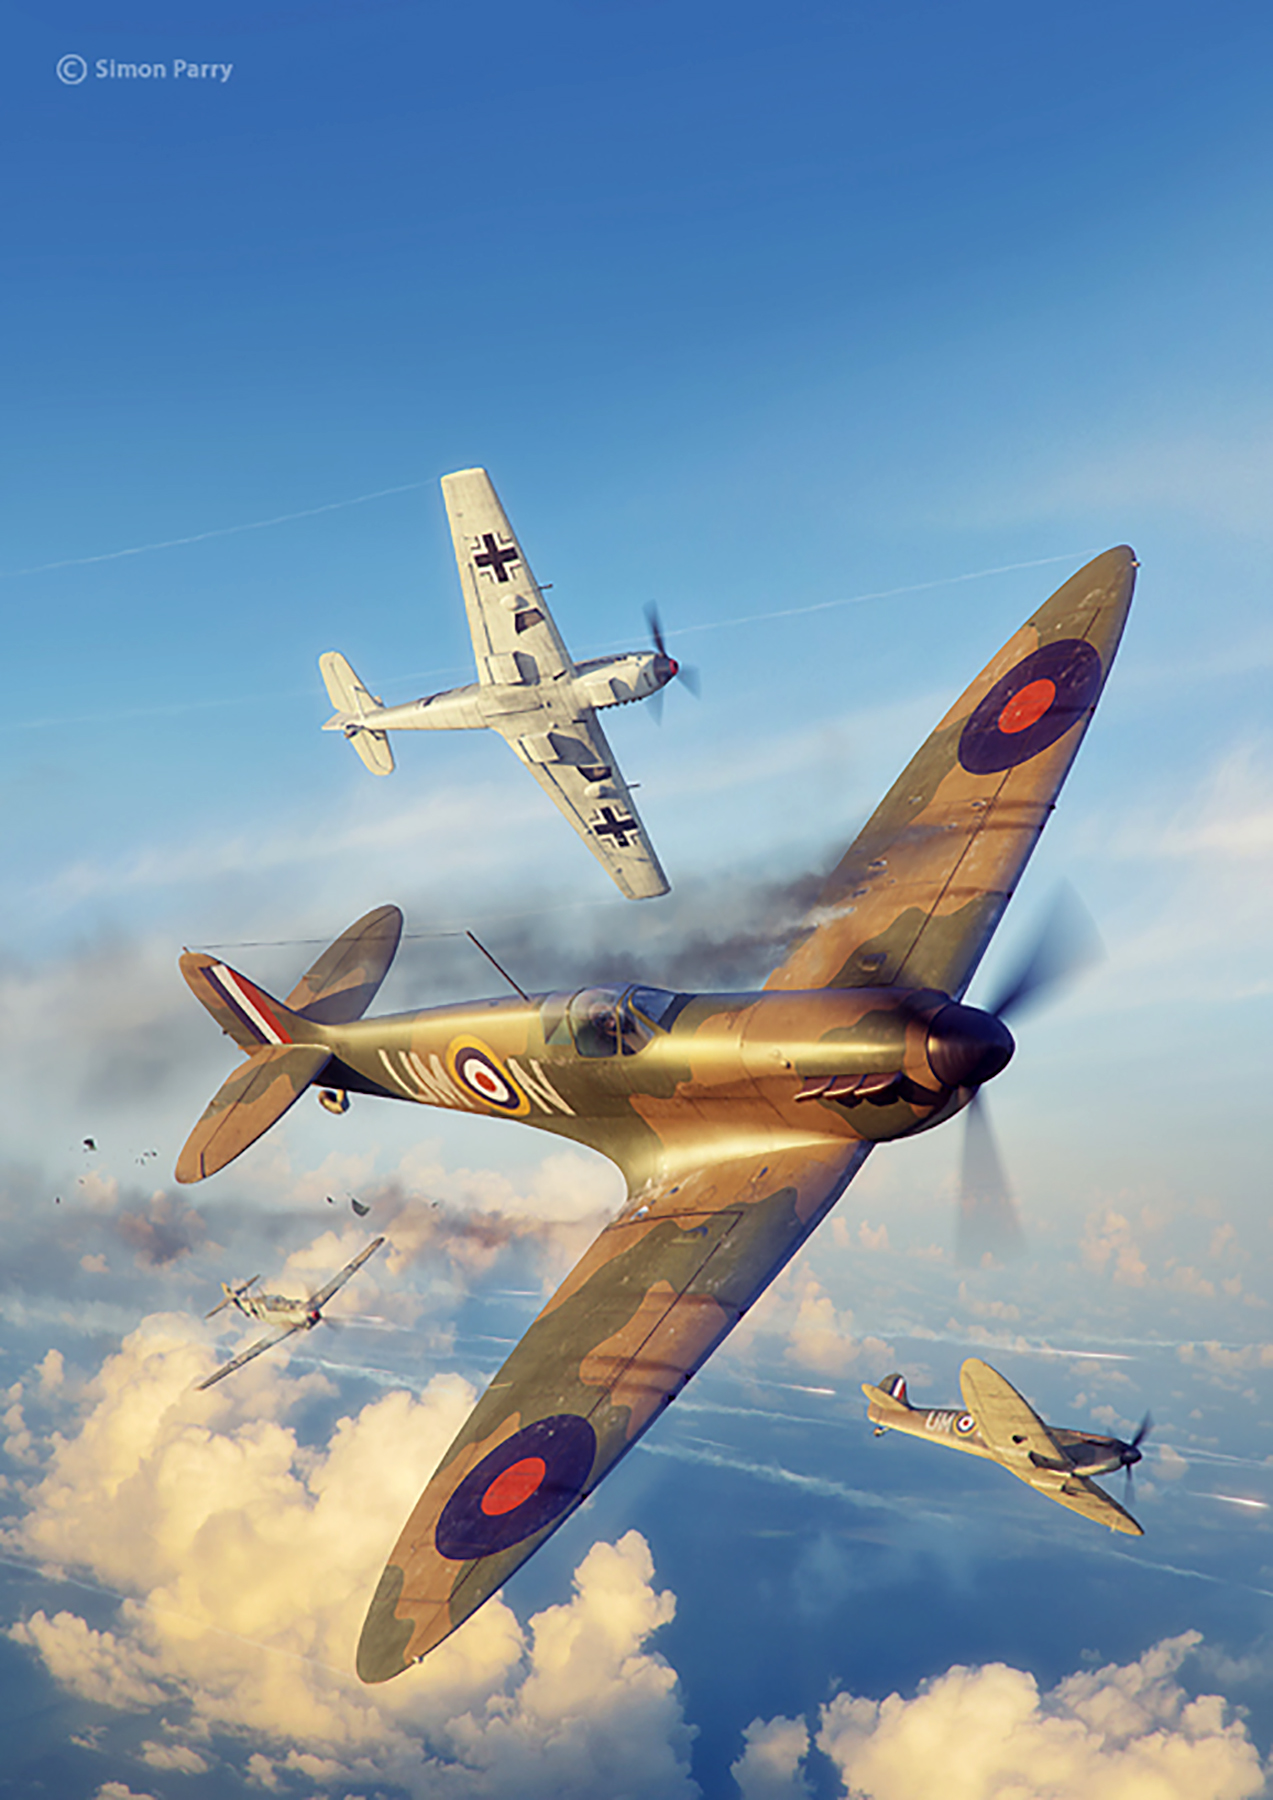 Spitfire MkI RAF 125Sqn UMN dog fight Battle of Britain painting by Simon Parry 0A